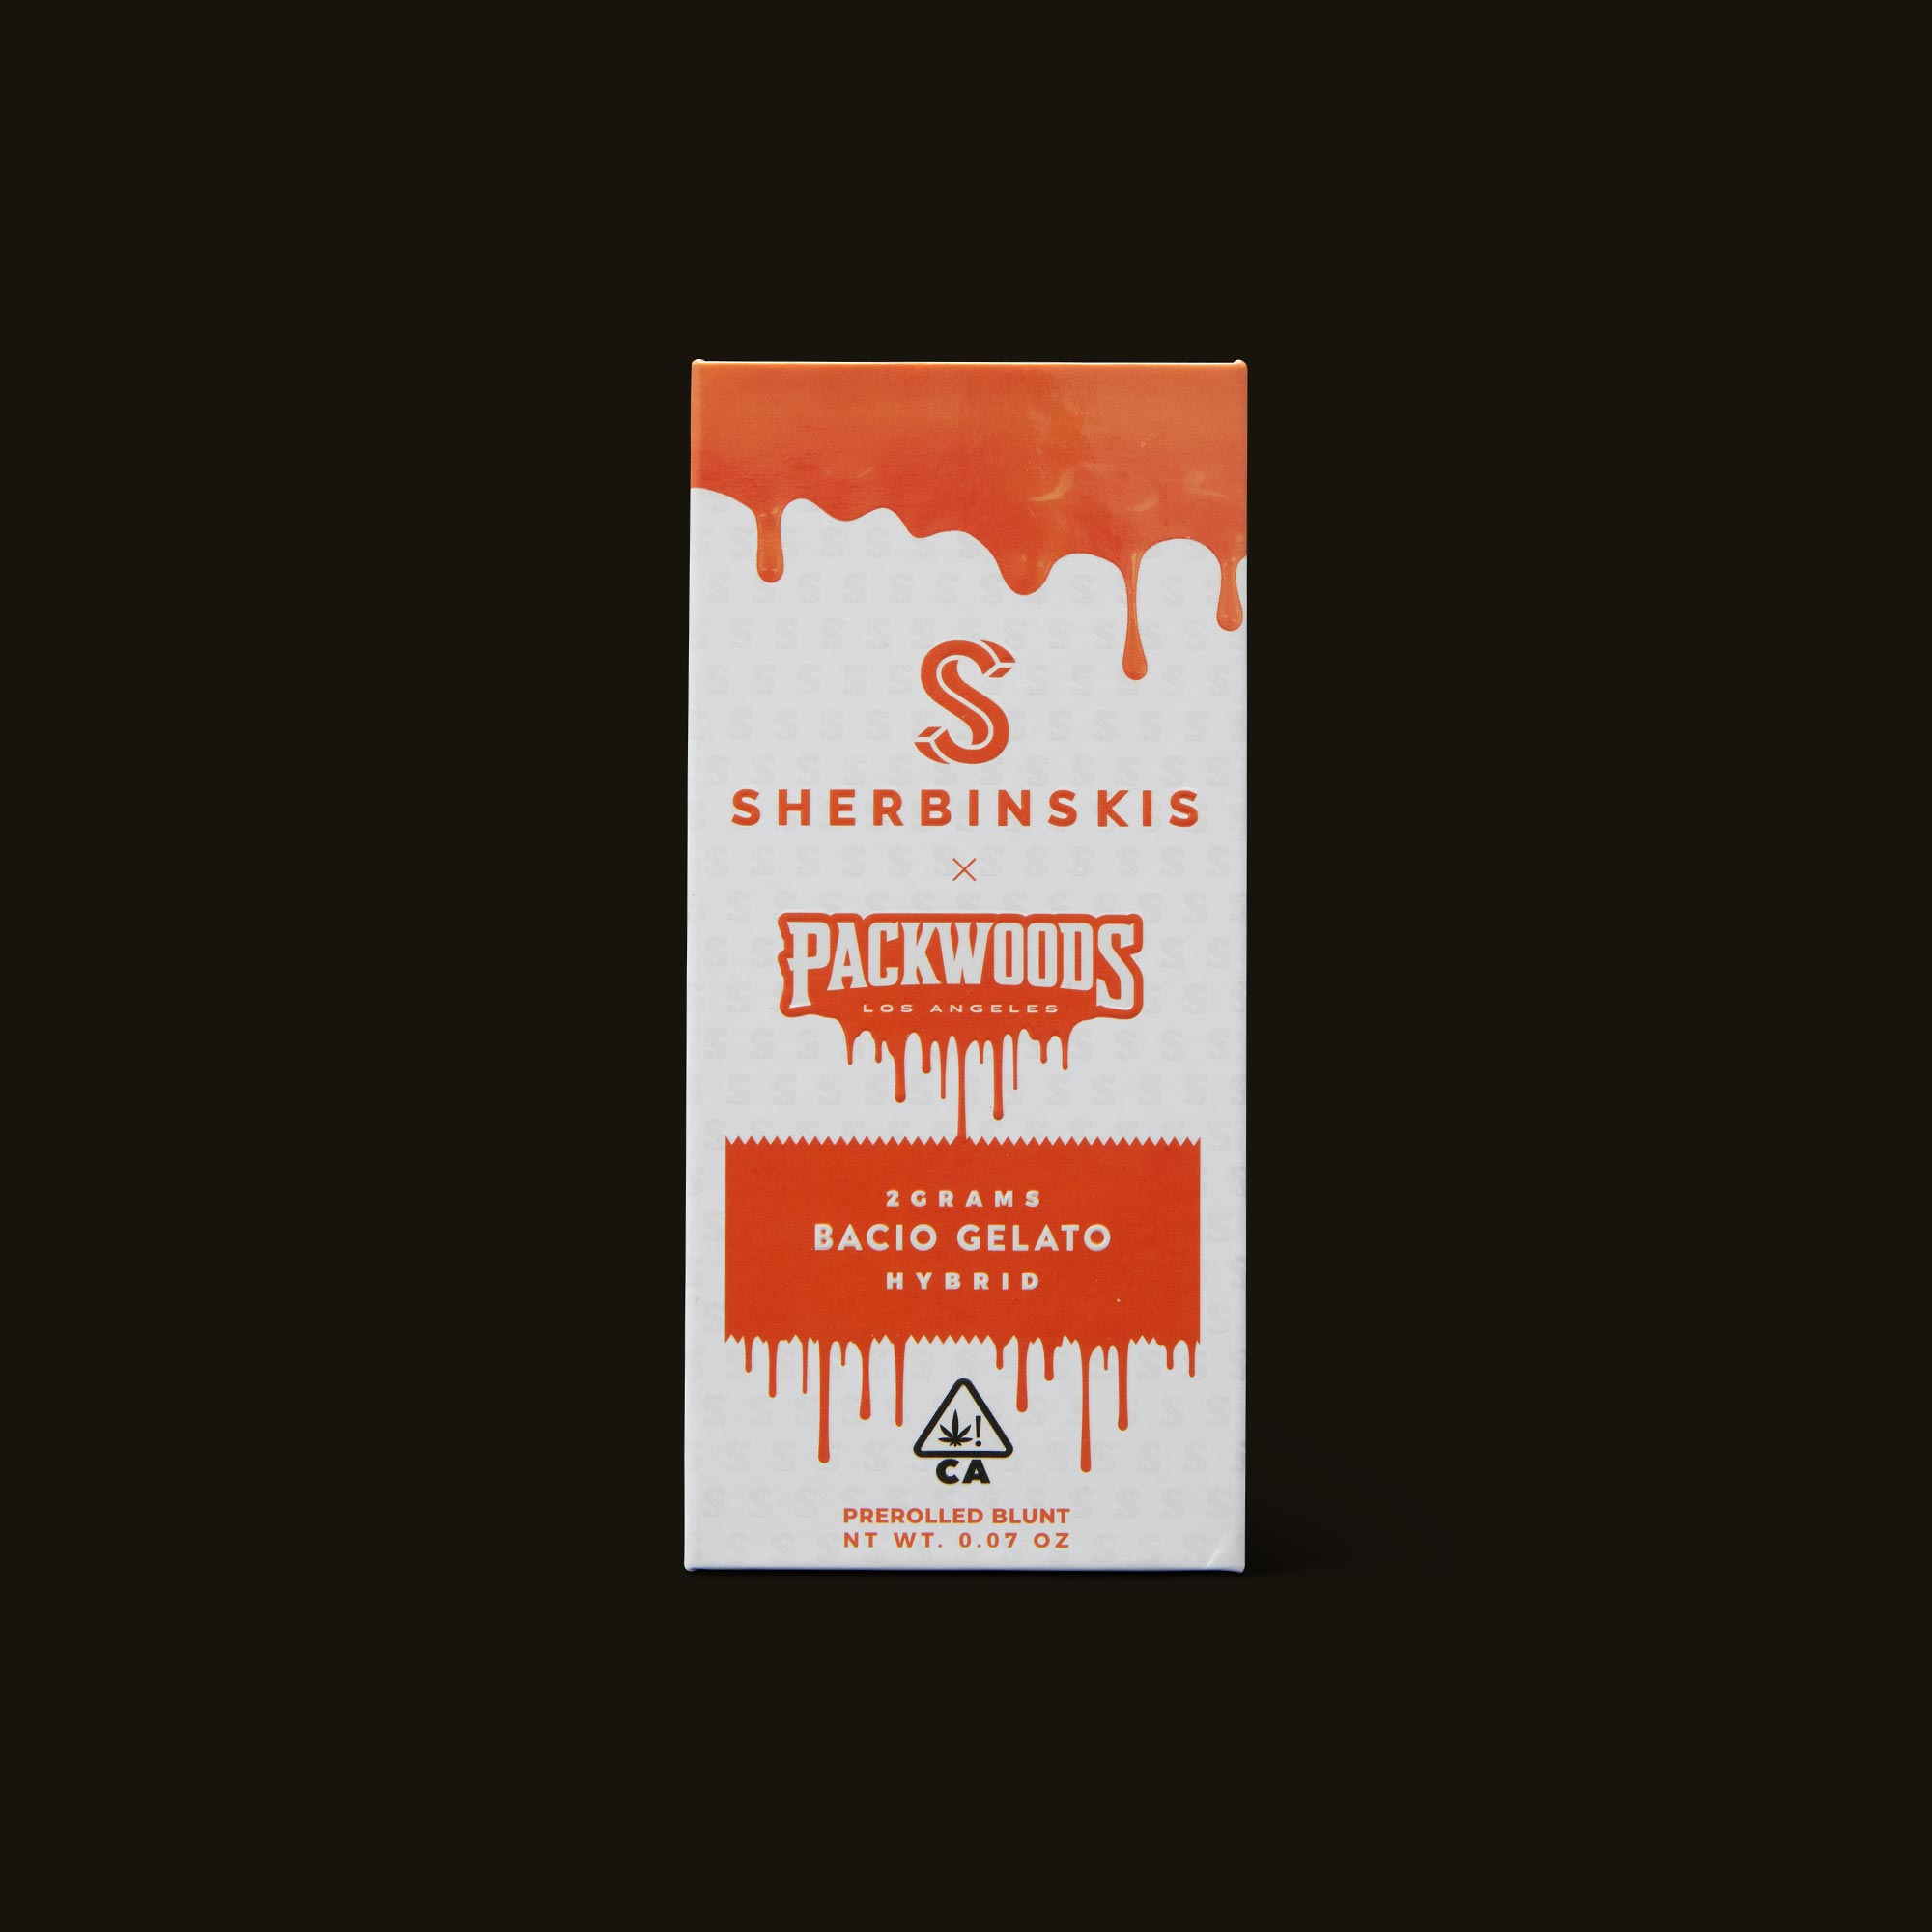 Packwoods Sherbinskis x Packwoods Bacio Gelato Blunt Front Packaging